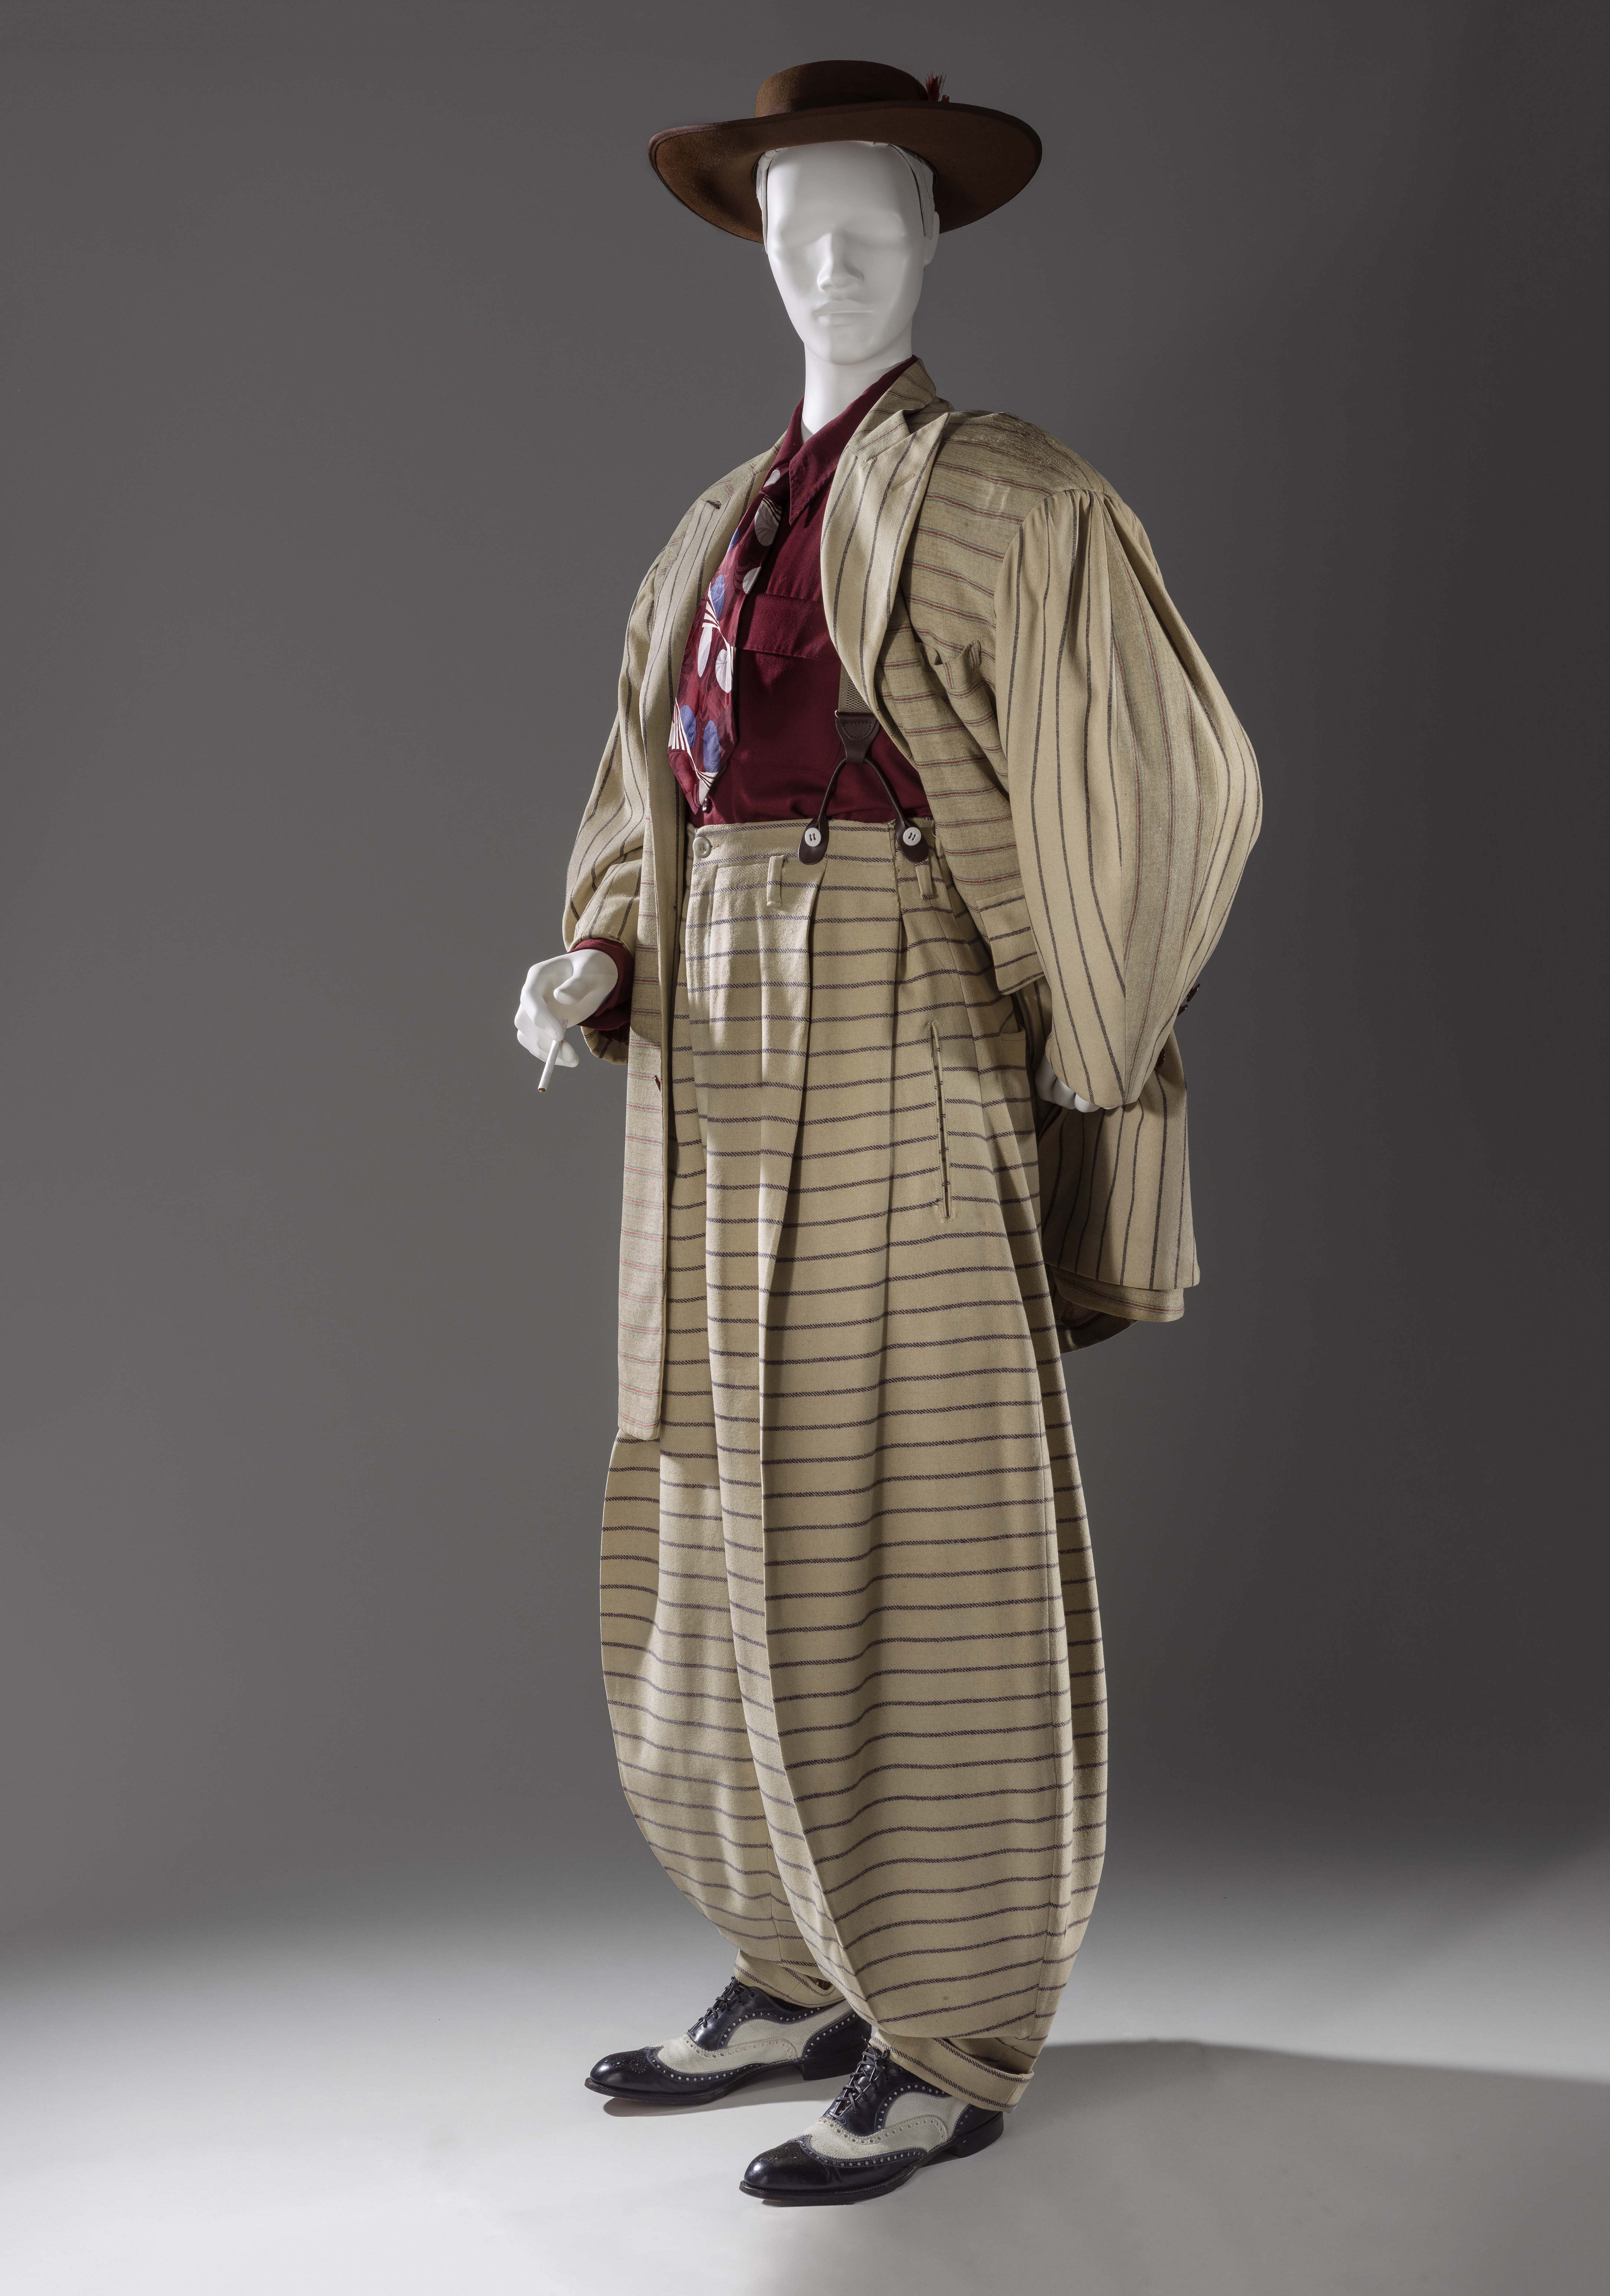 Zoot suit (United States, 1940-42). Photo credit: © Museum associates/LACMA